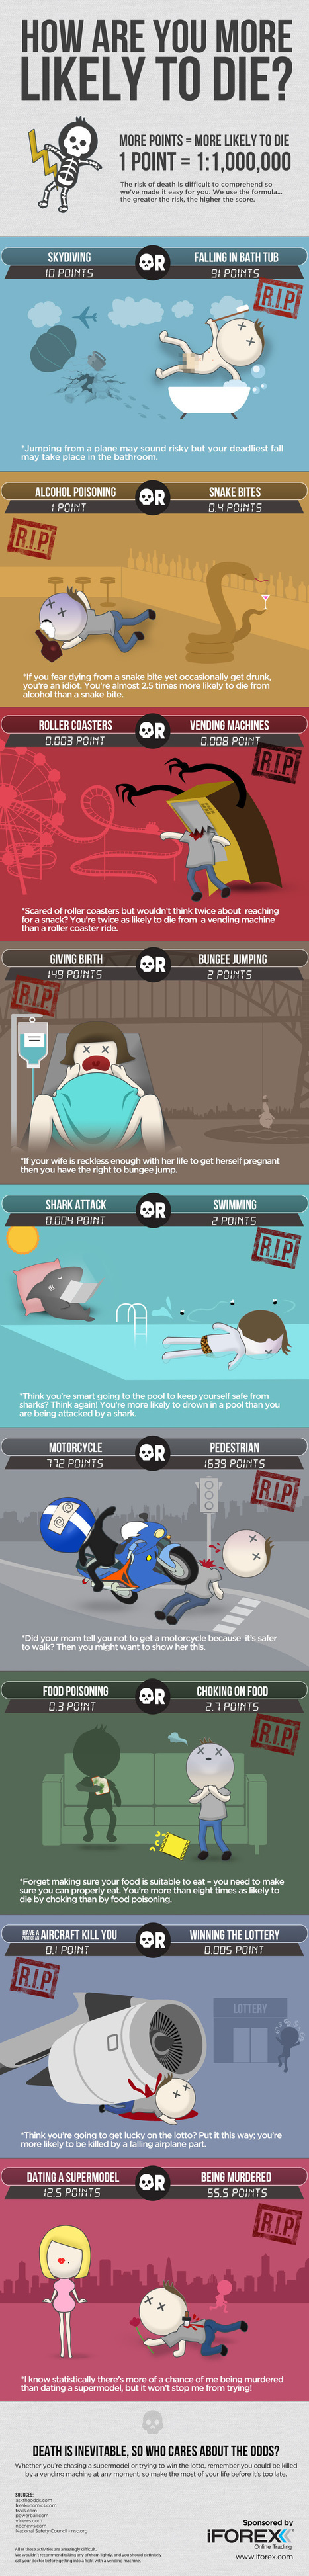 How Are You More Likely To Die? - iFOREX Blog | Infographic | Scoop.it